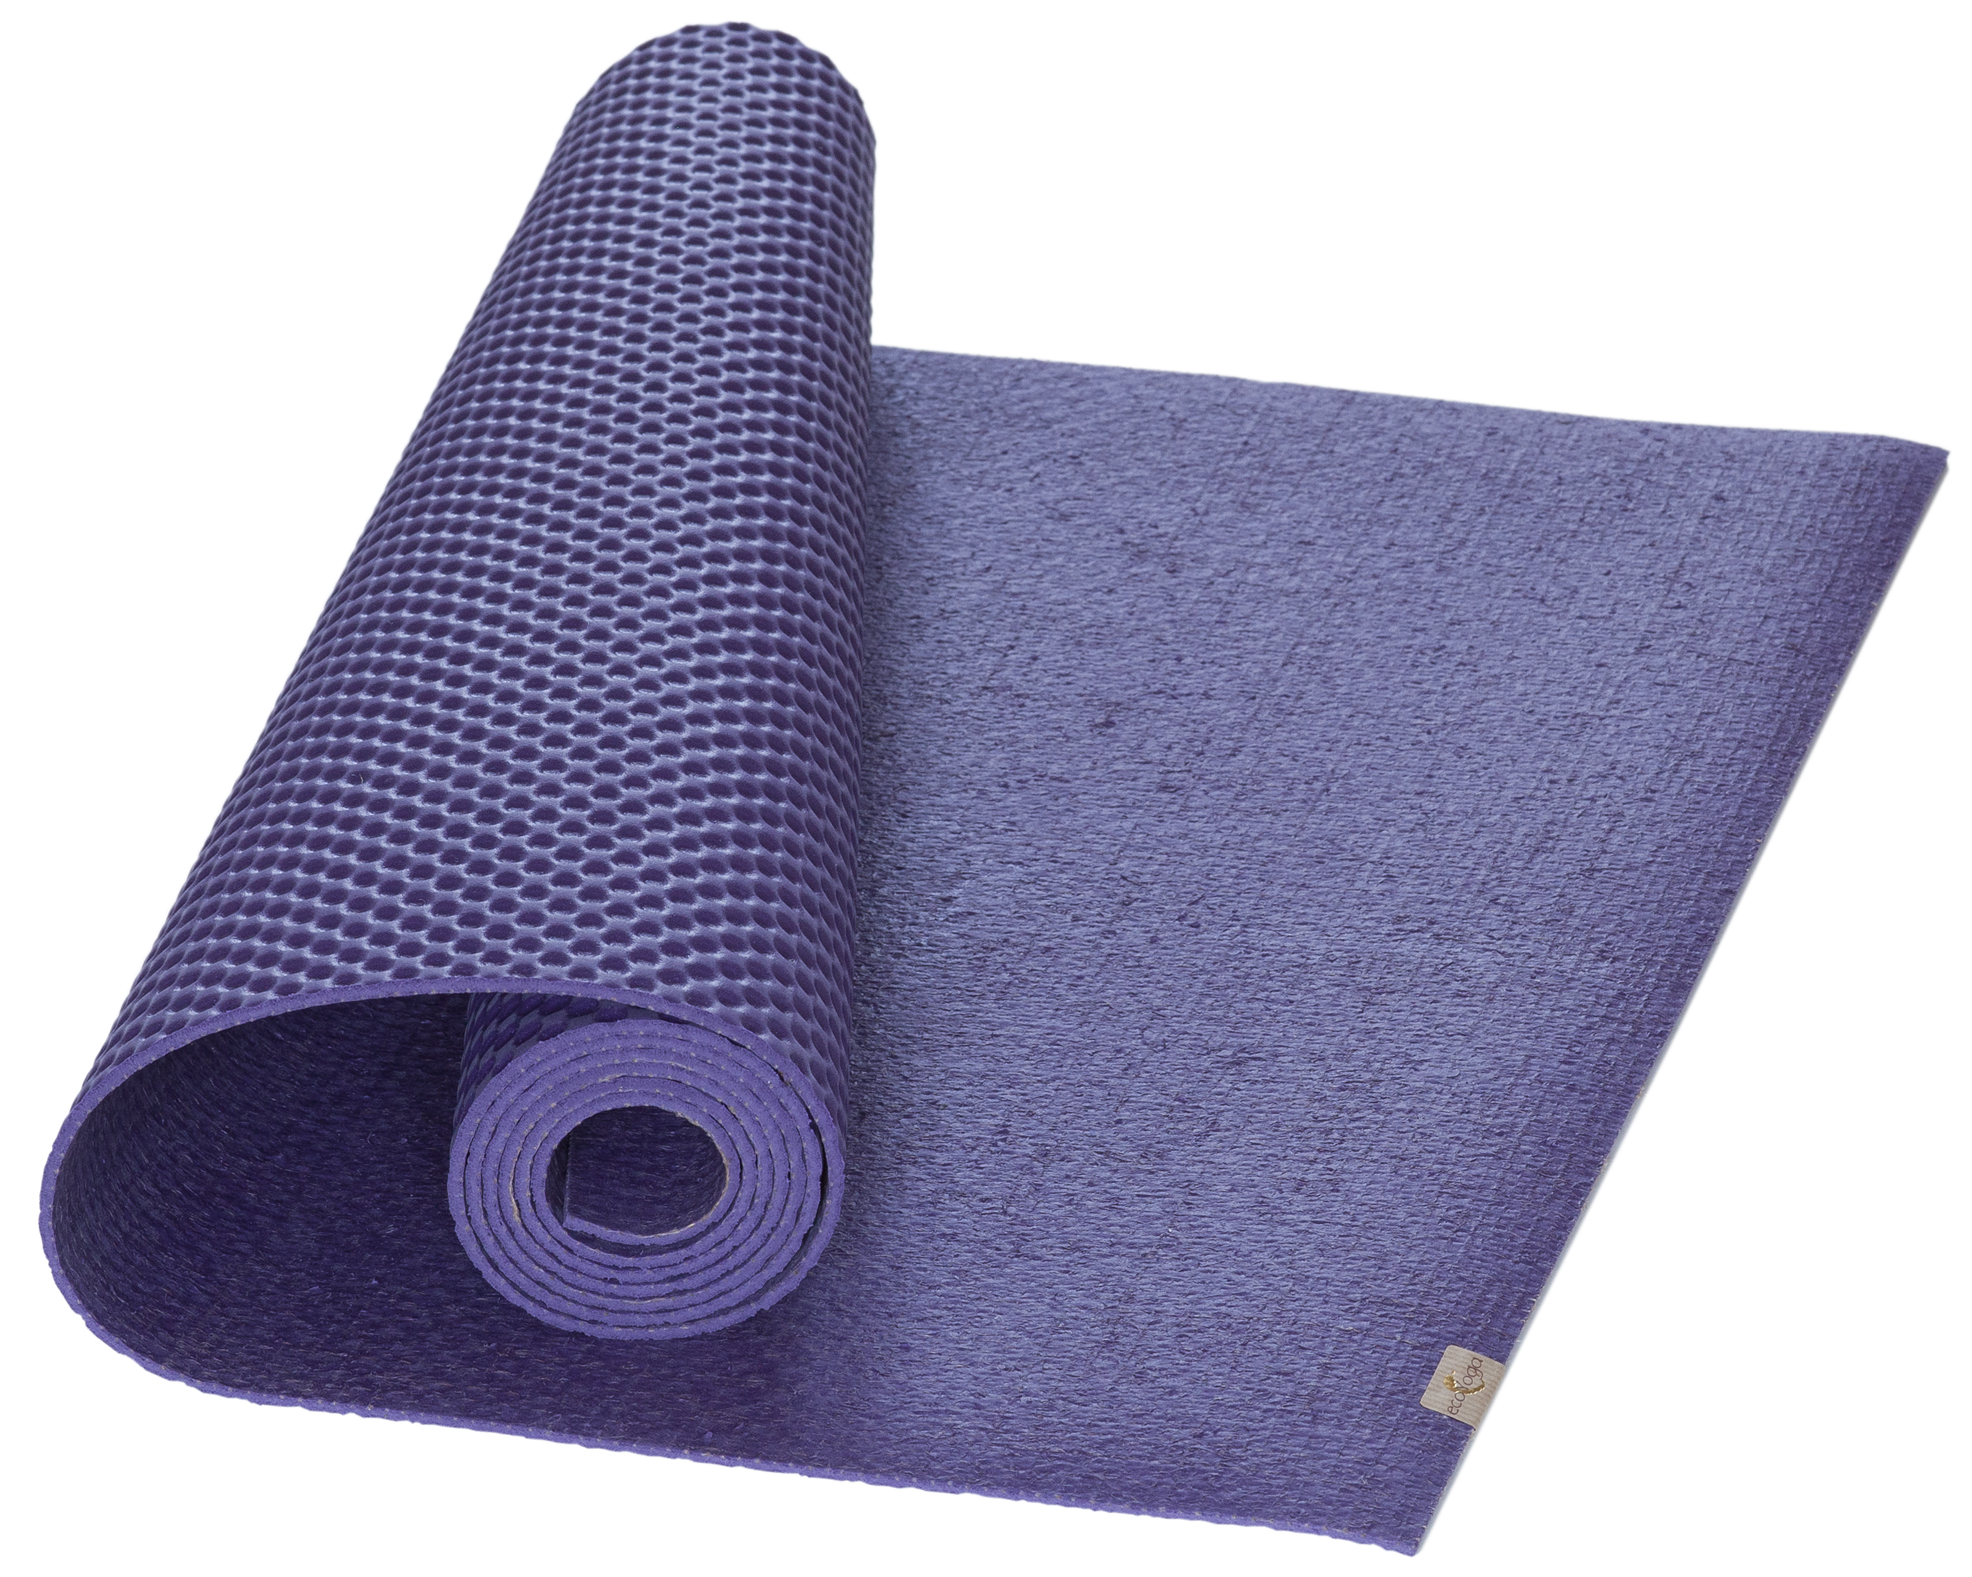 x products mats yoyo seafoam grey standardwidthextralong mat yoga roll cheap yogamat cali yoyomats